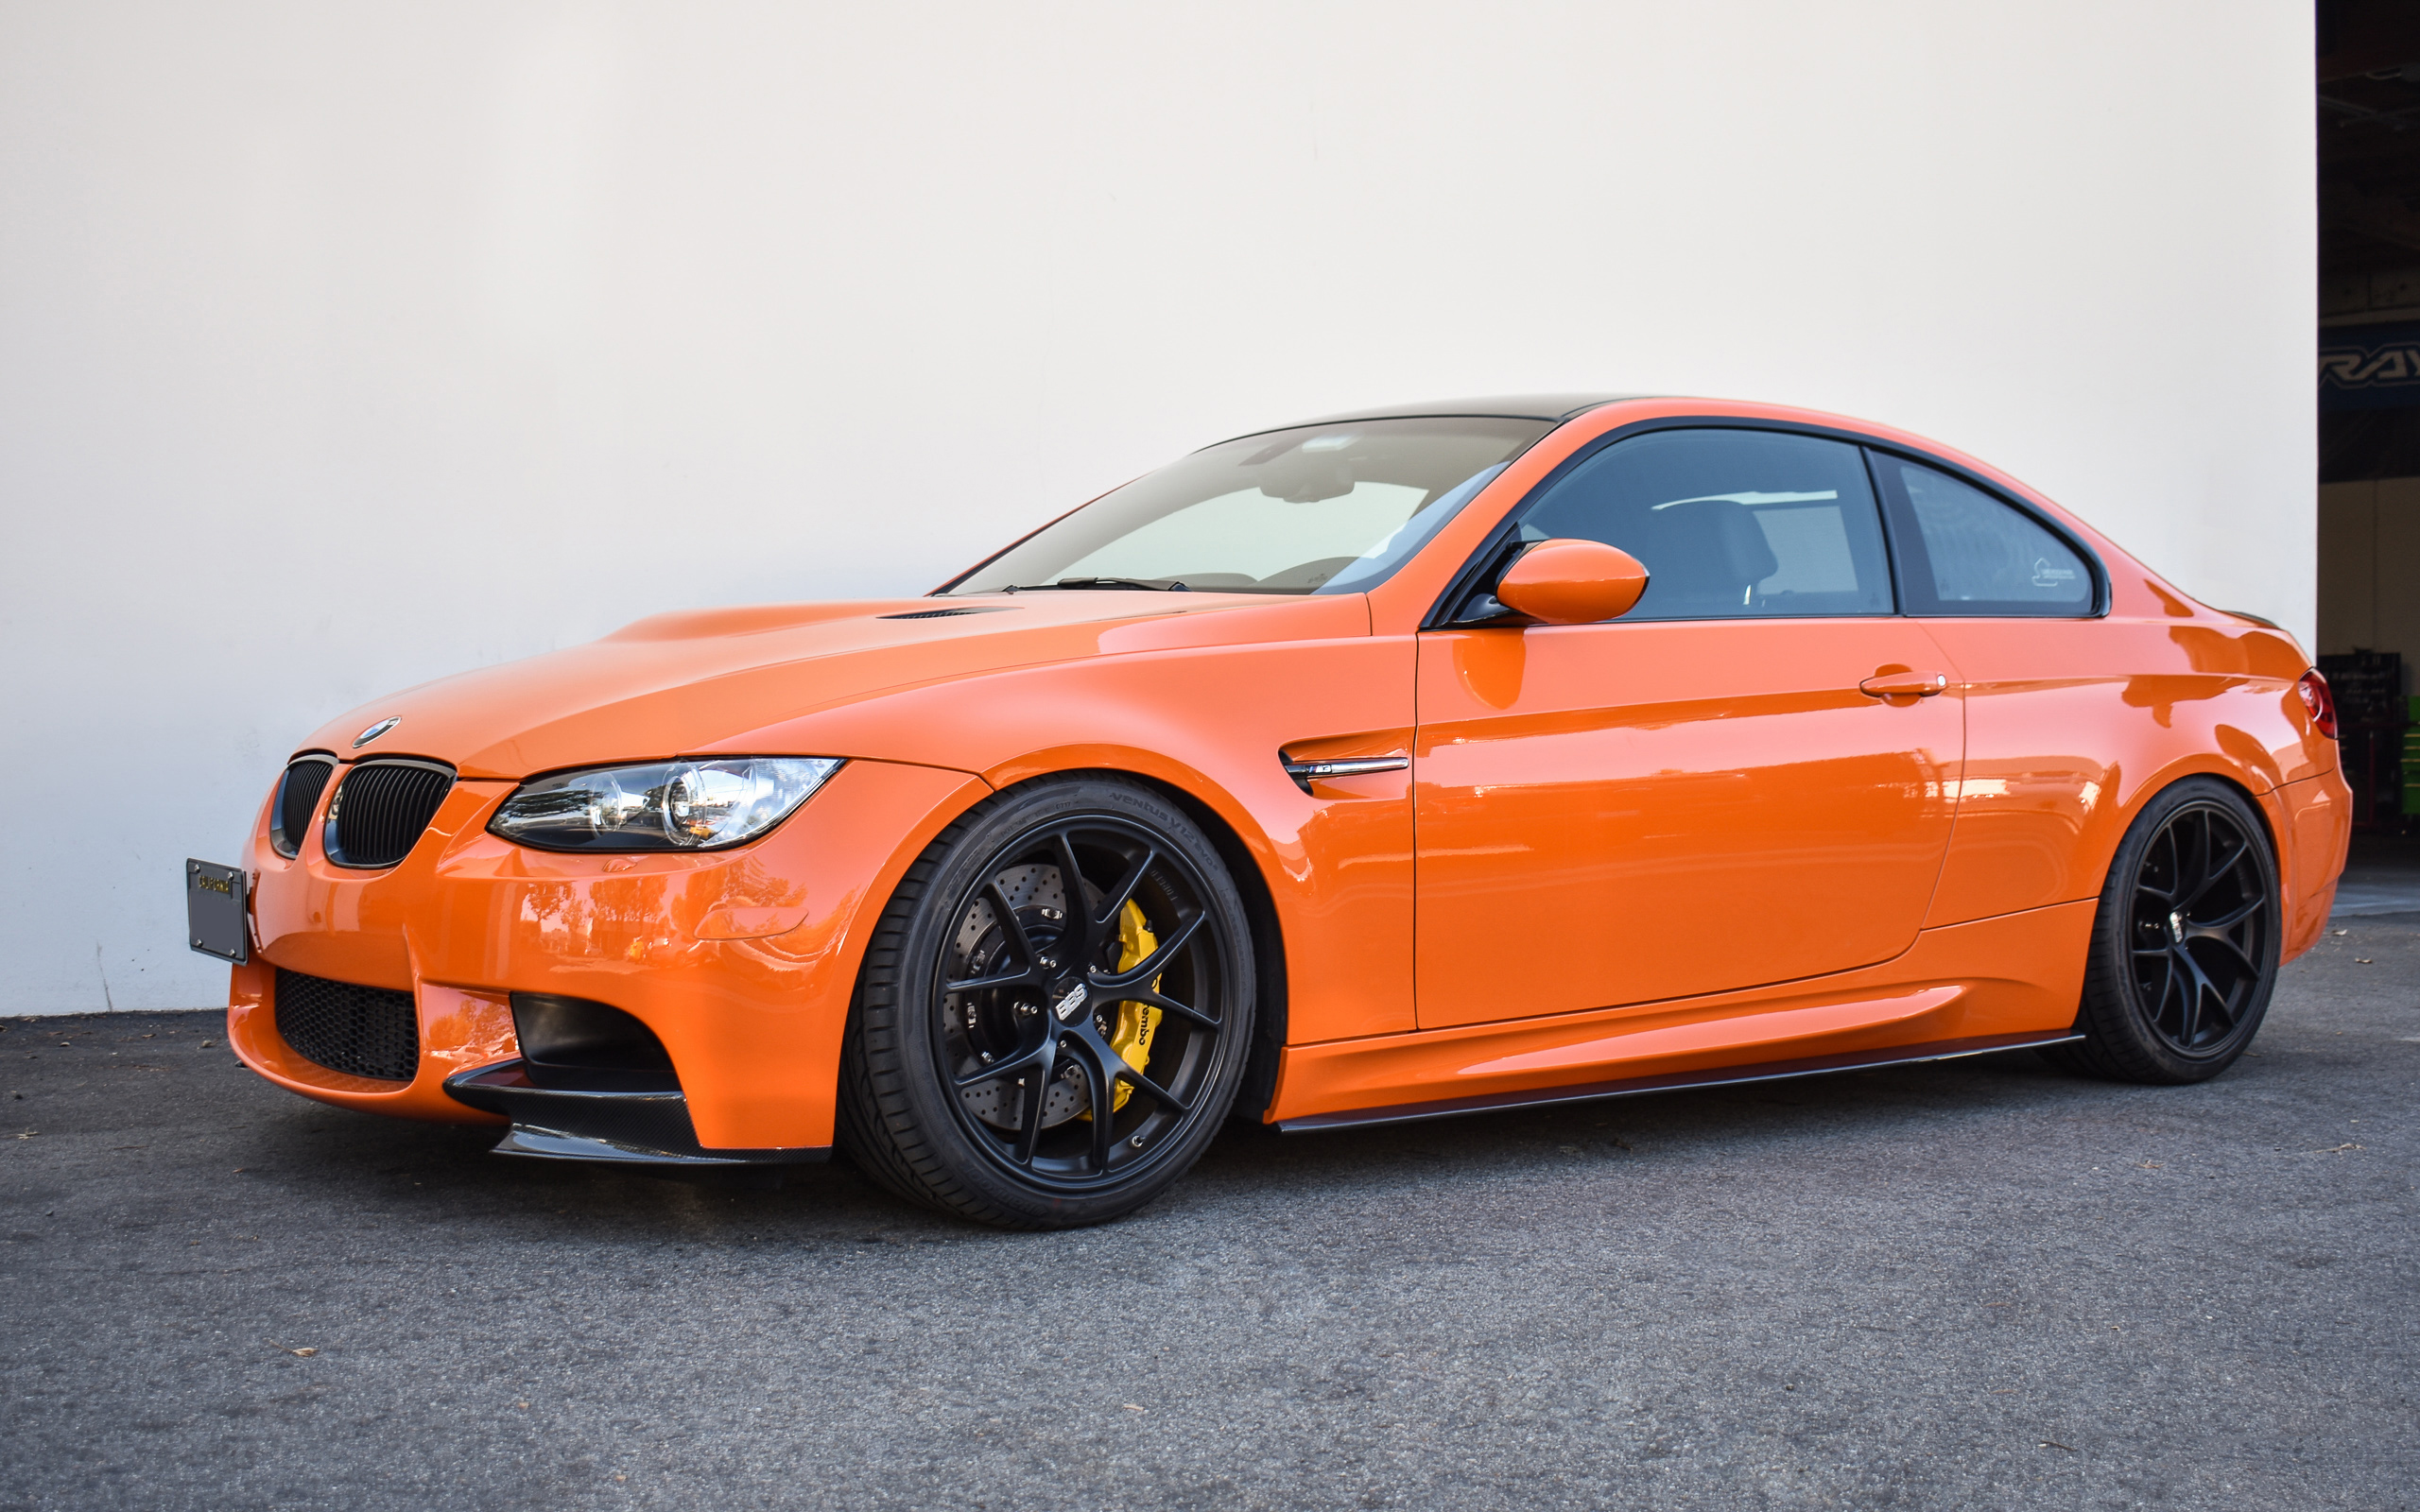 2013 Fire Orange E92 M3 Lime Rock Park Edition -  KW  Variant 3 (V3) Coilover System